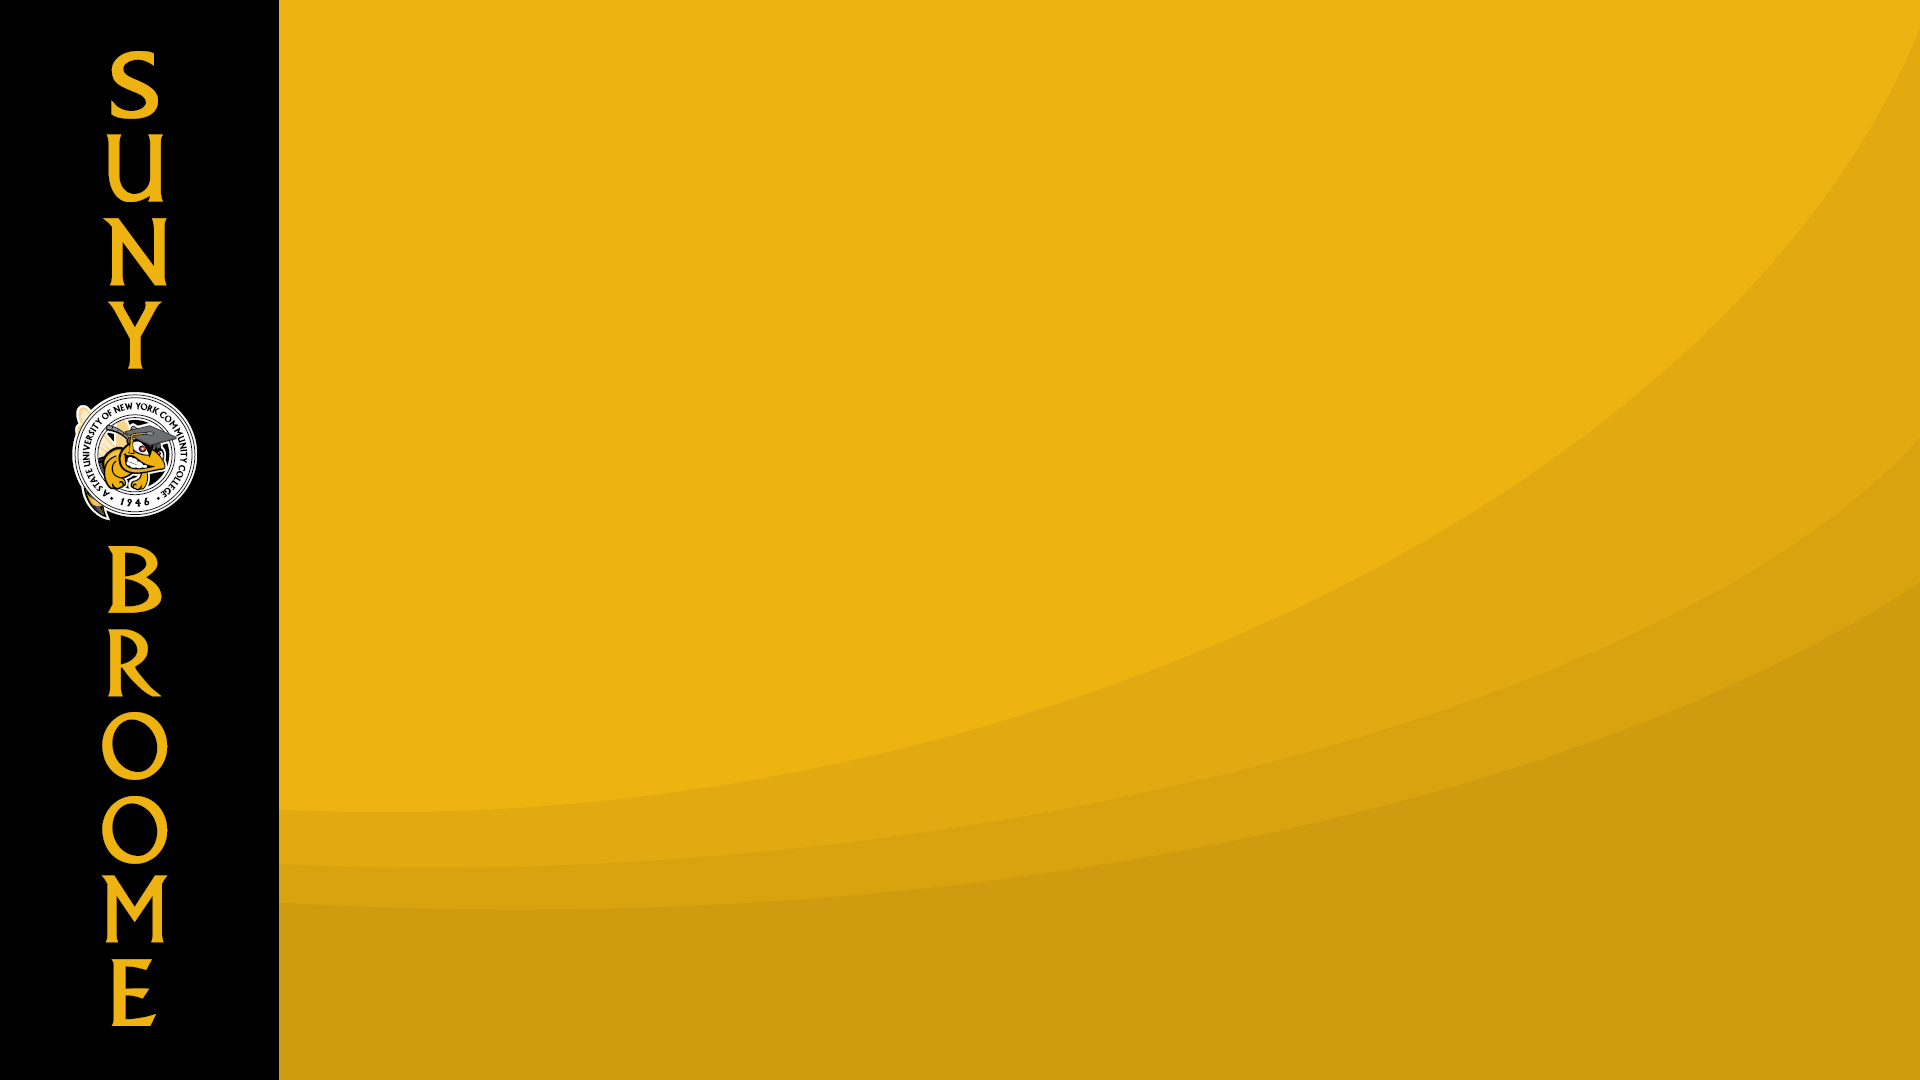 Download Zoom virtual background with SUNY Broome logo displayed vertically on left over a black stripe with abstract yellow background taking up majority of the visual space (jpg)